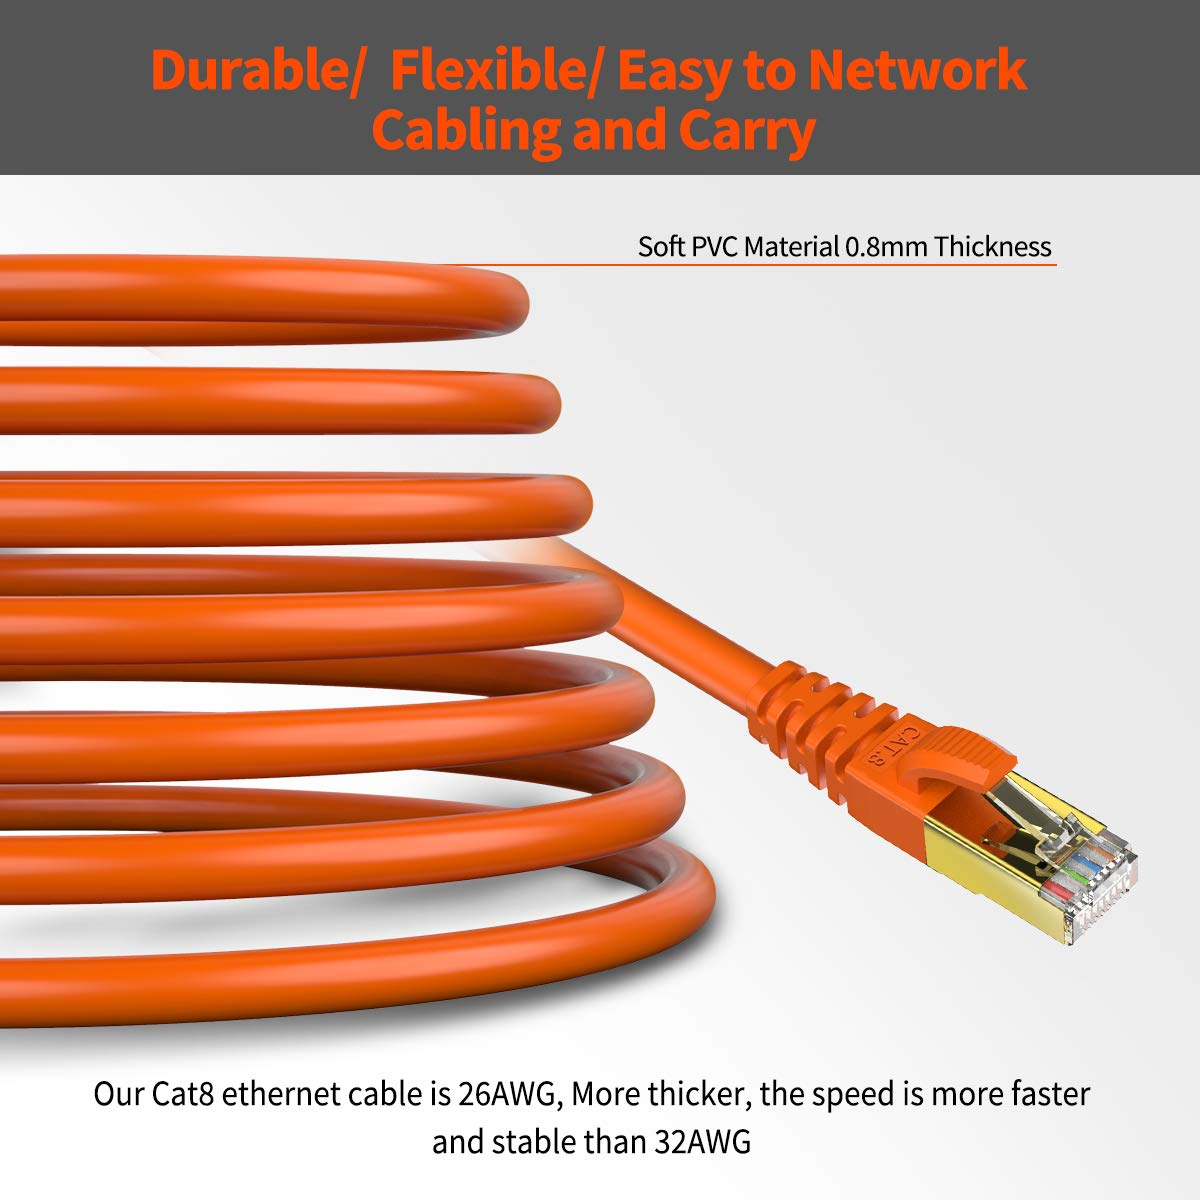 Xbox Modem Heavy Duty High Speed Lan Cables w Gold Plated RJ45 Connector Professional for Router Gaming CAT 8 Ethernet Cable 1 M Shielded 1 Pack Orange SFTP Internet Network Patch Cord